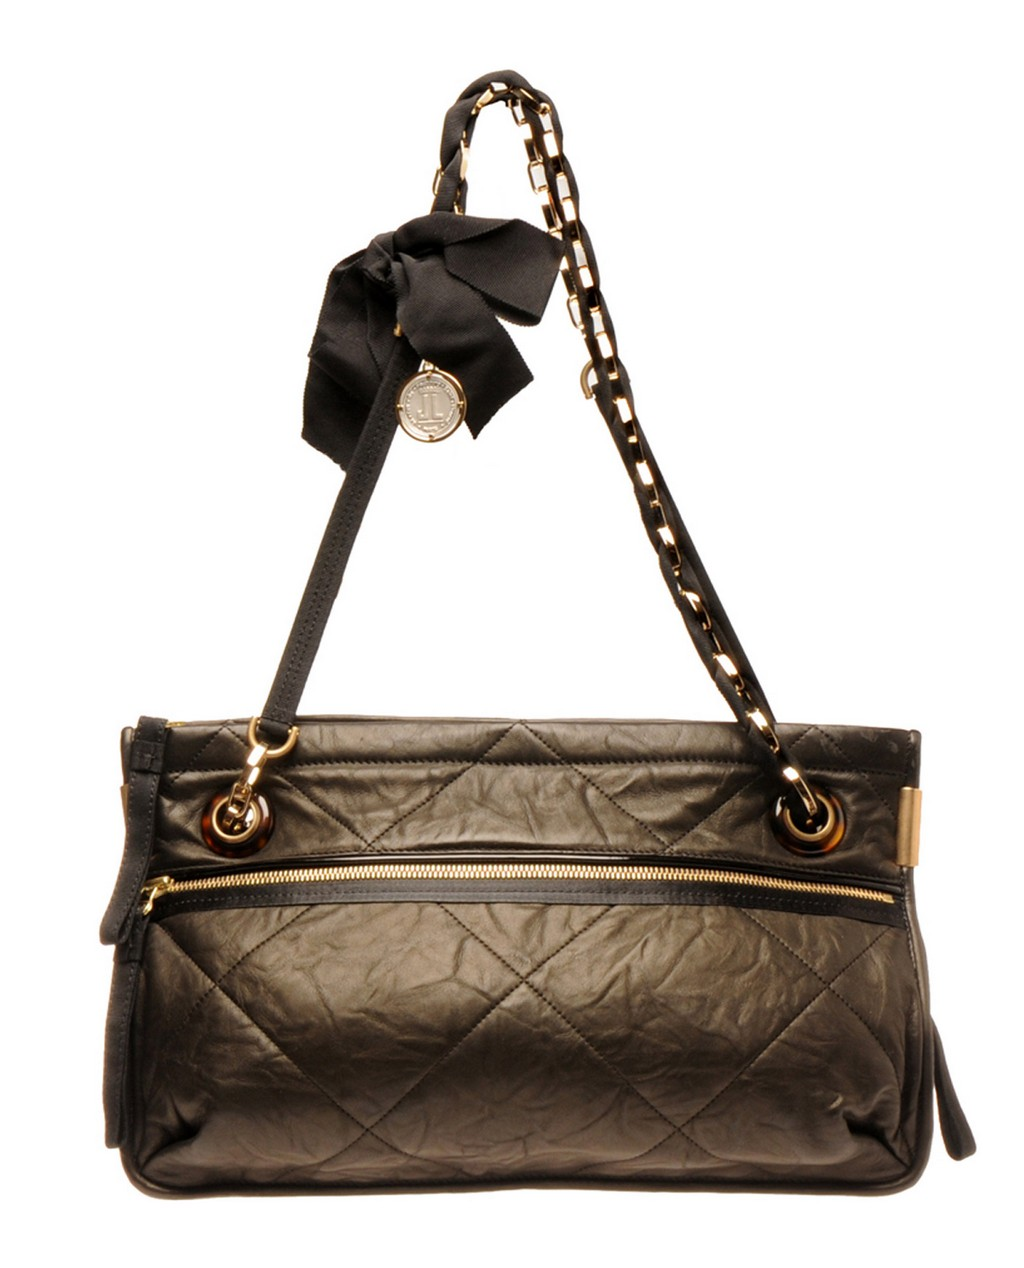 guess hobo hobo satchel hobo crossbody bag leather hobo